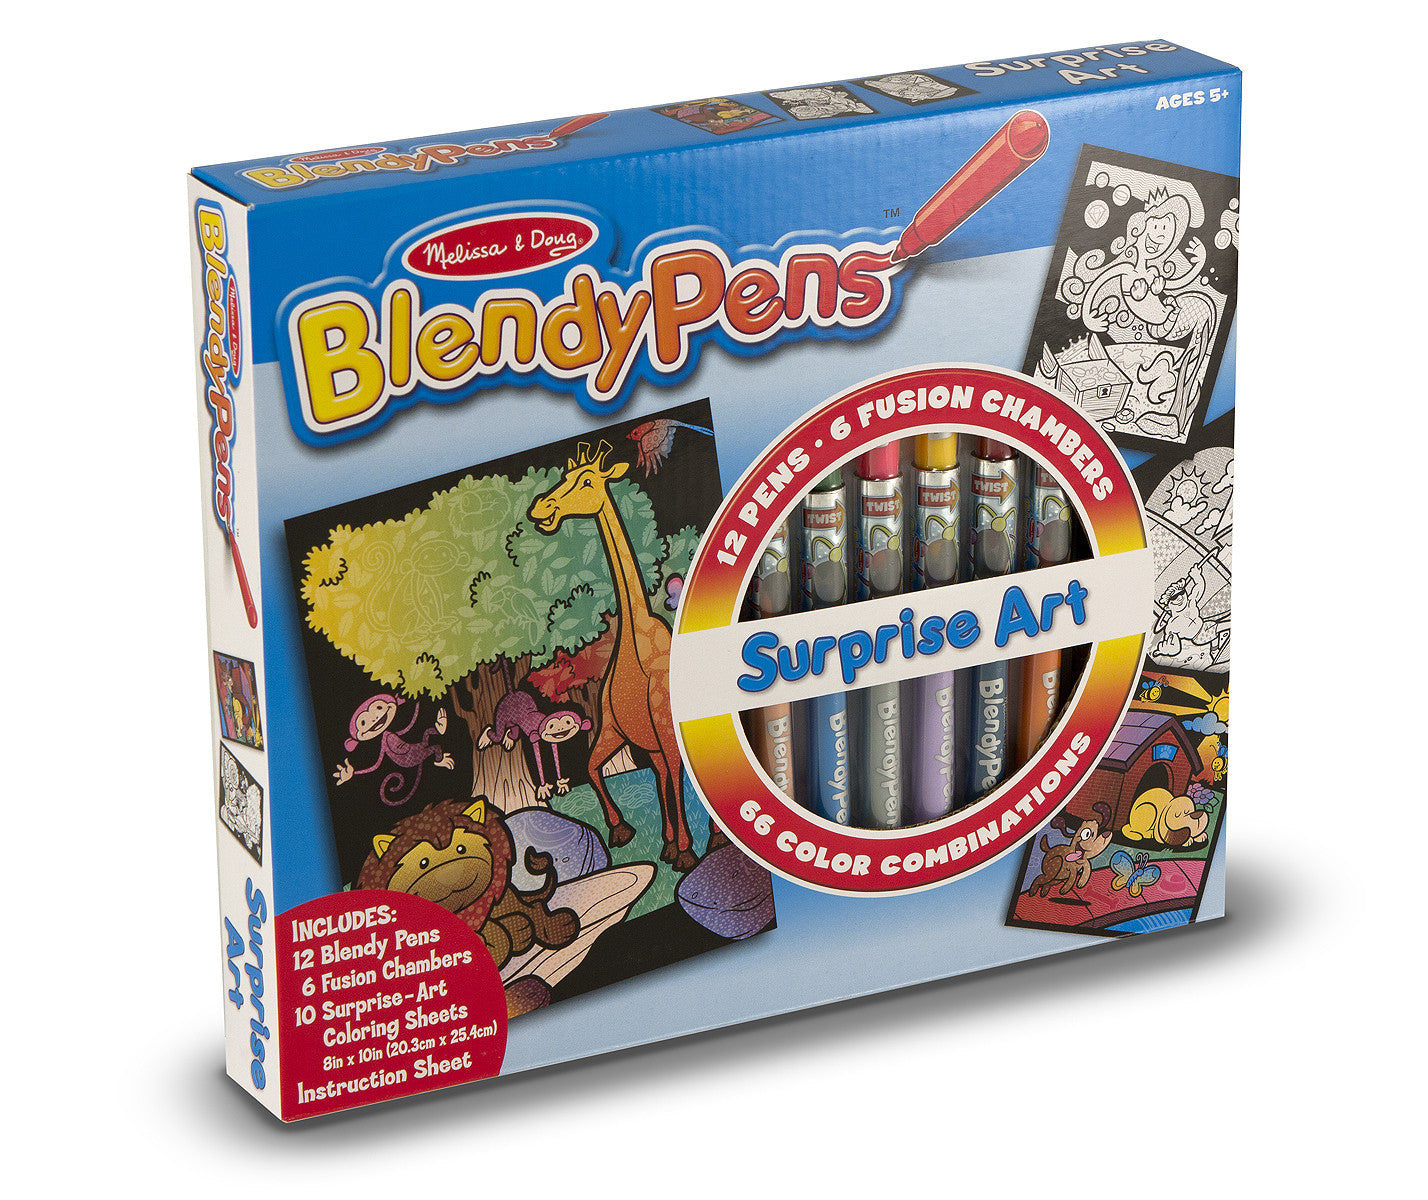 Melissa & Doug Blendypens - Surprise Art 5298